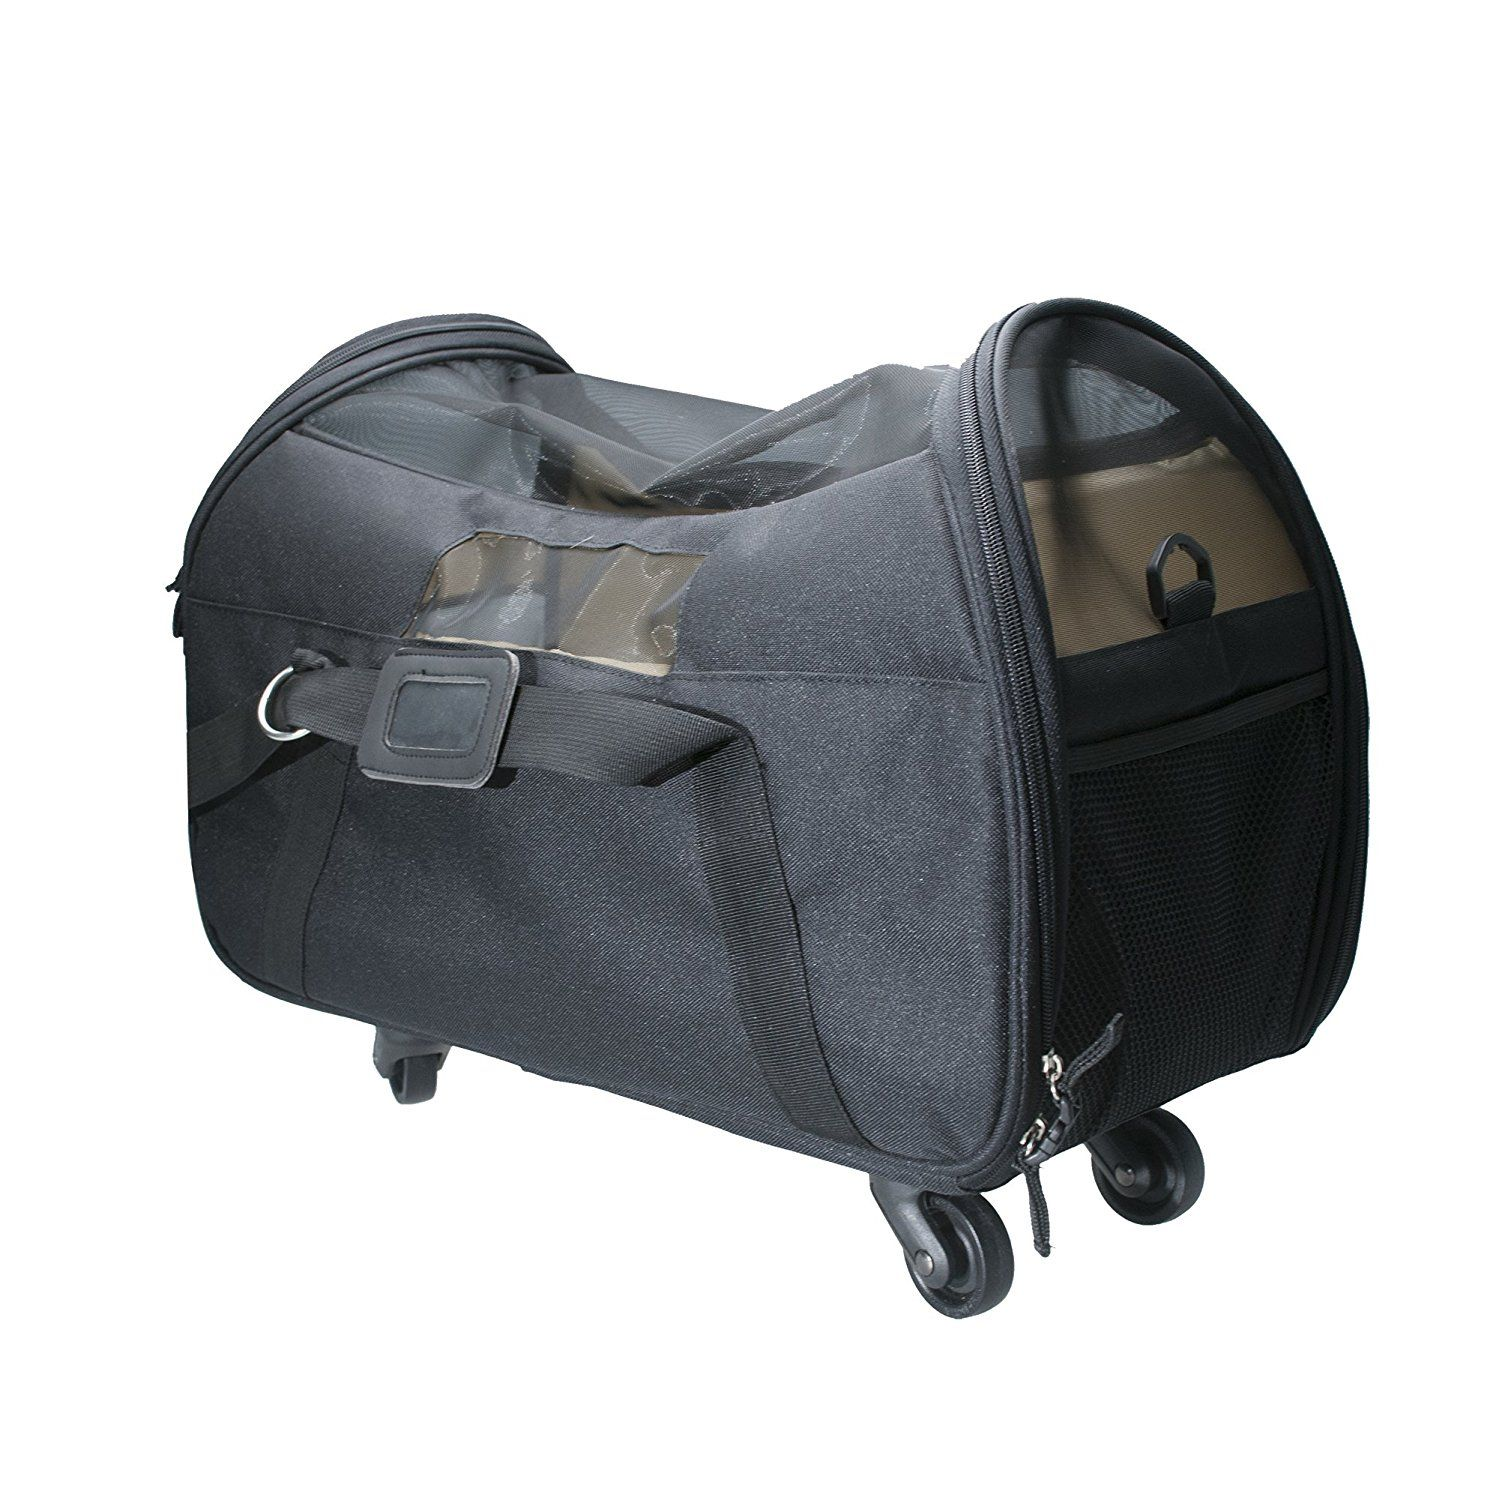 Airline Approved Pet Carrier Brown Travel Carrier With Wheels And